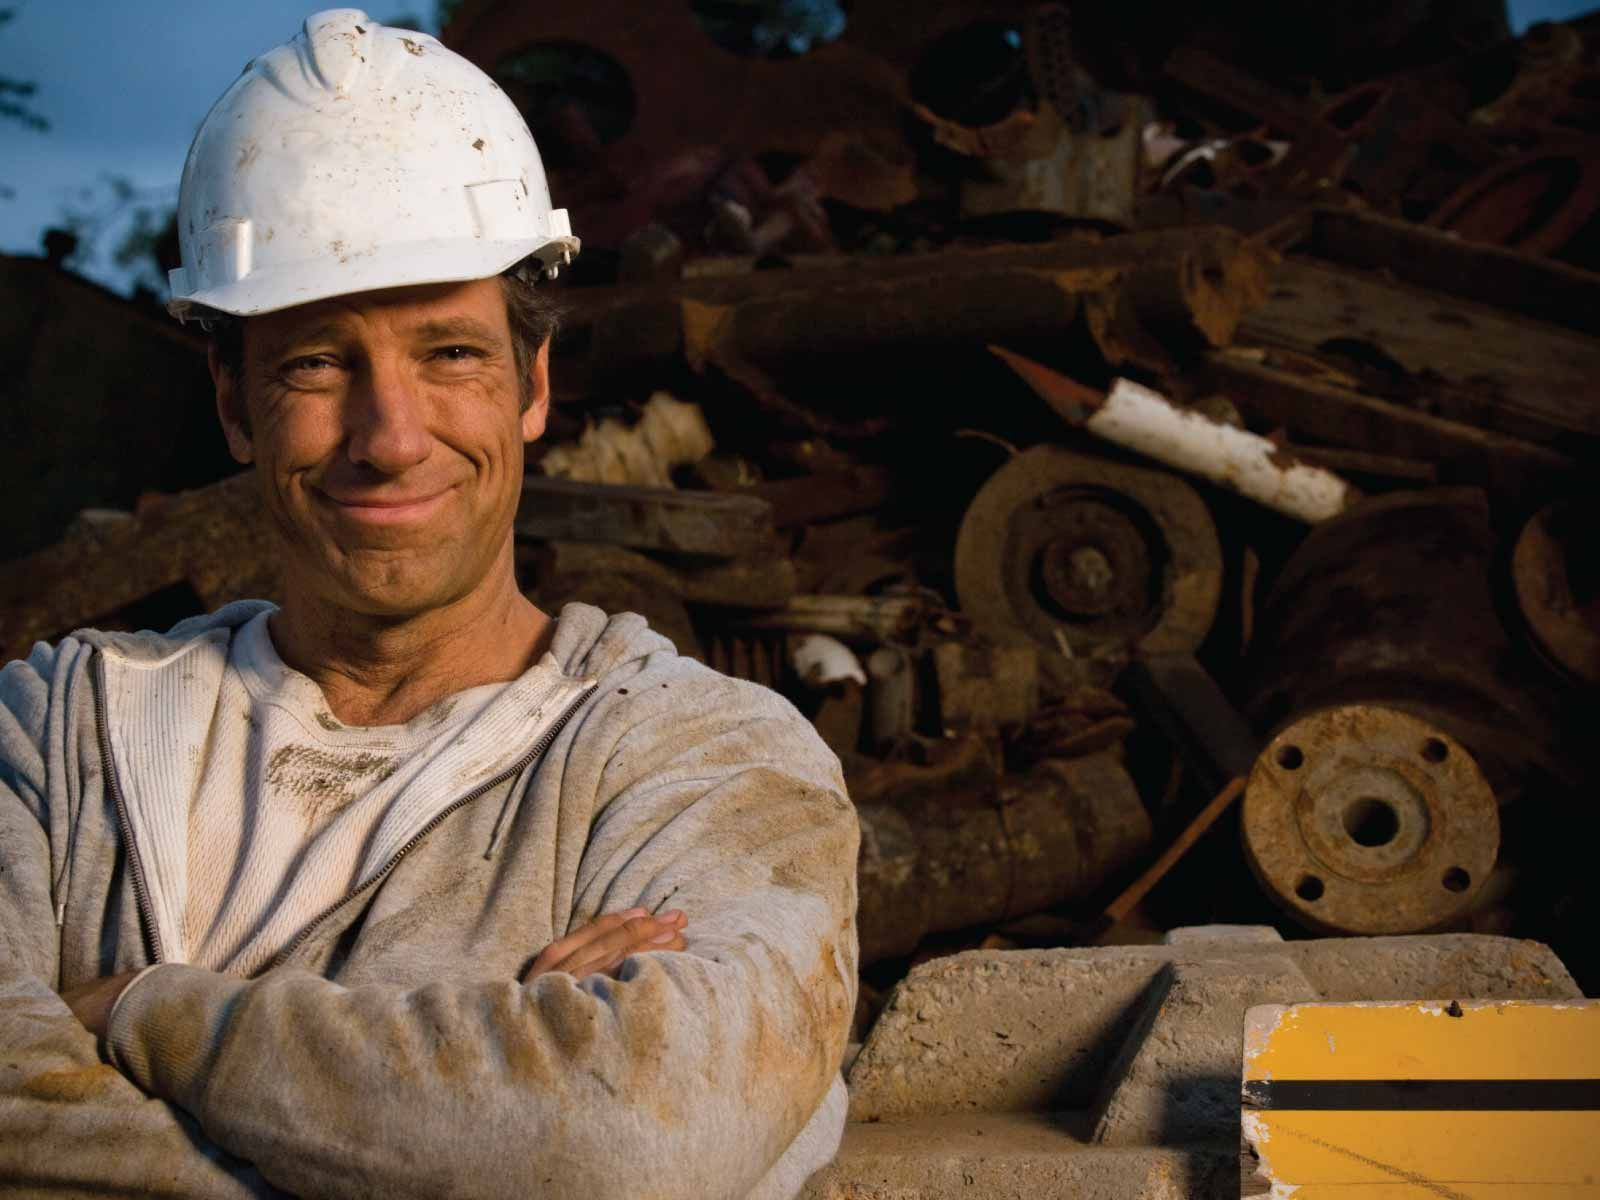 mike rowe's completely transparent, totally honest, eagle scout